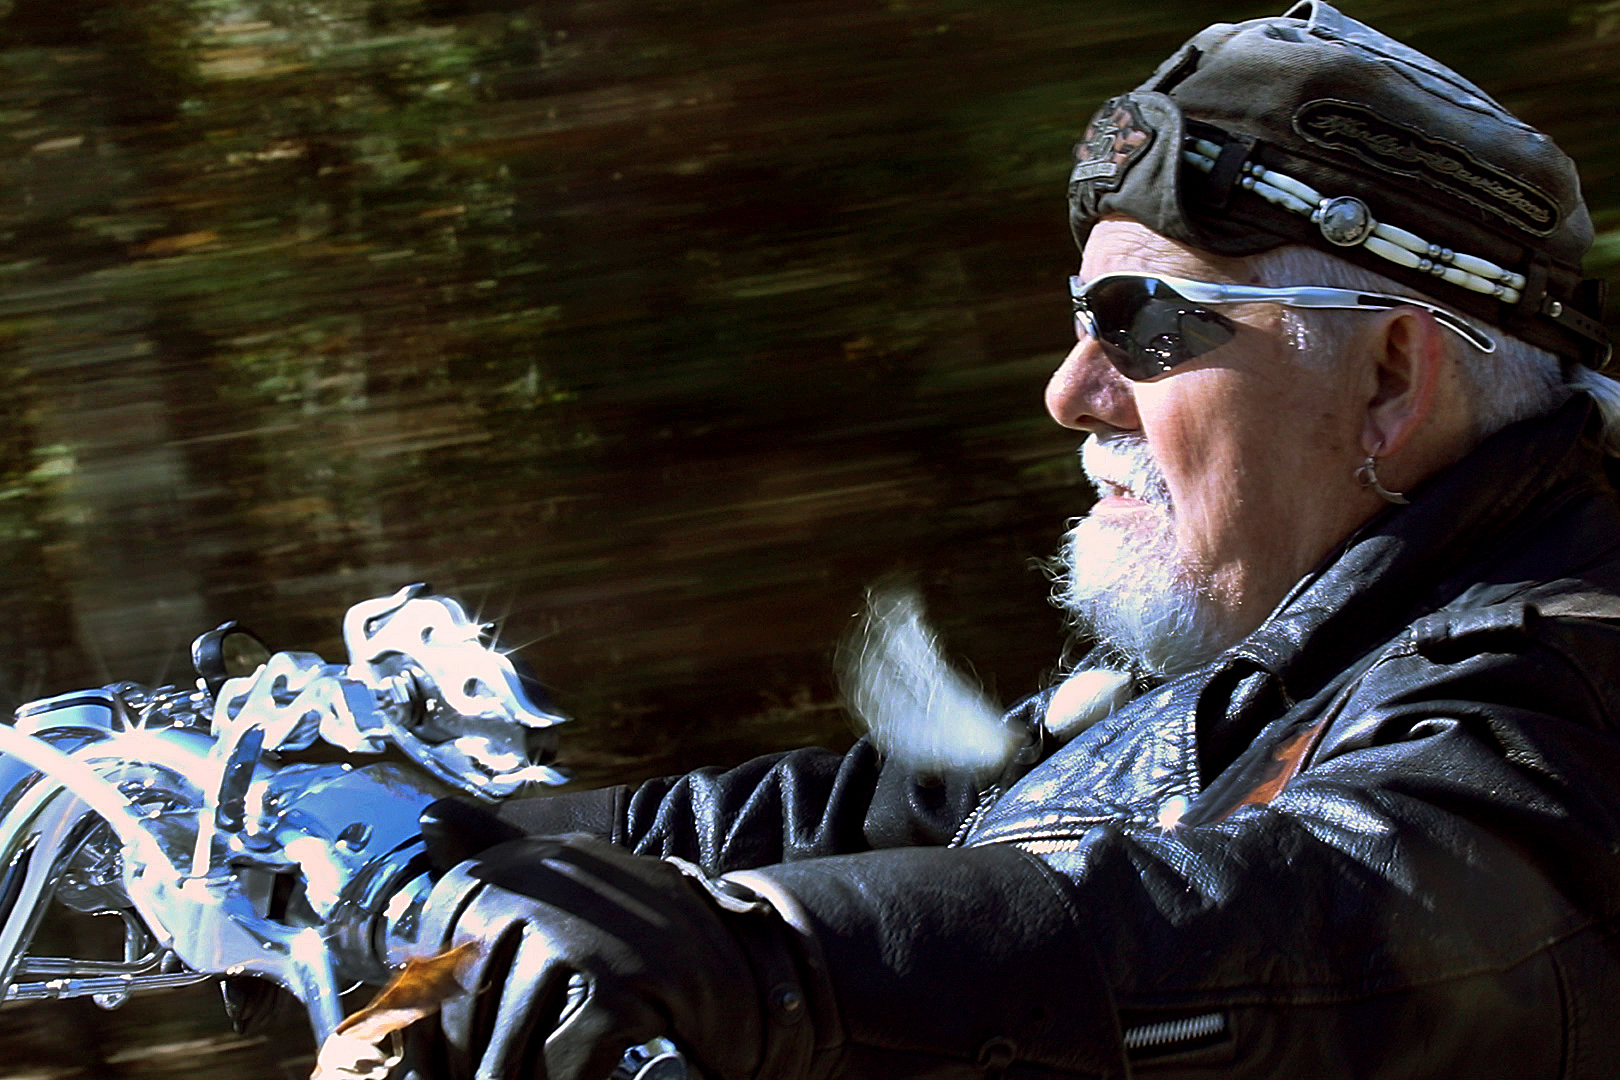 After a hard life, Dennis Lawrence founded Free Spirit Biker Church where people like him feel welcome.